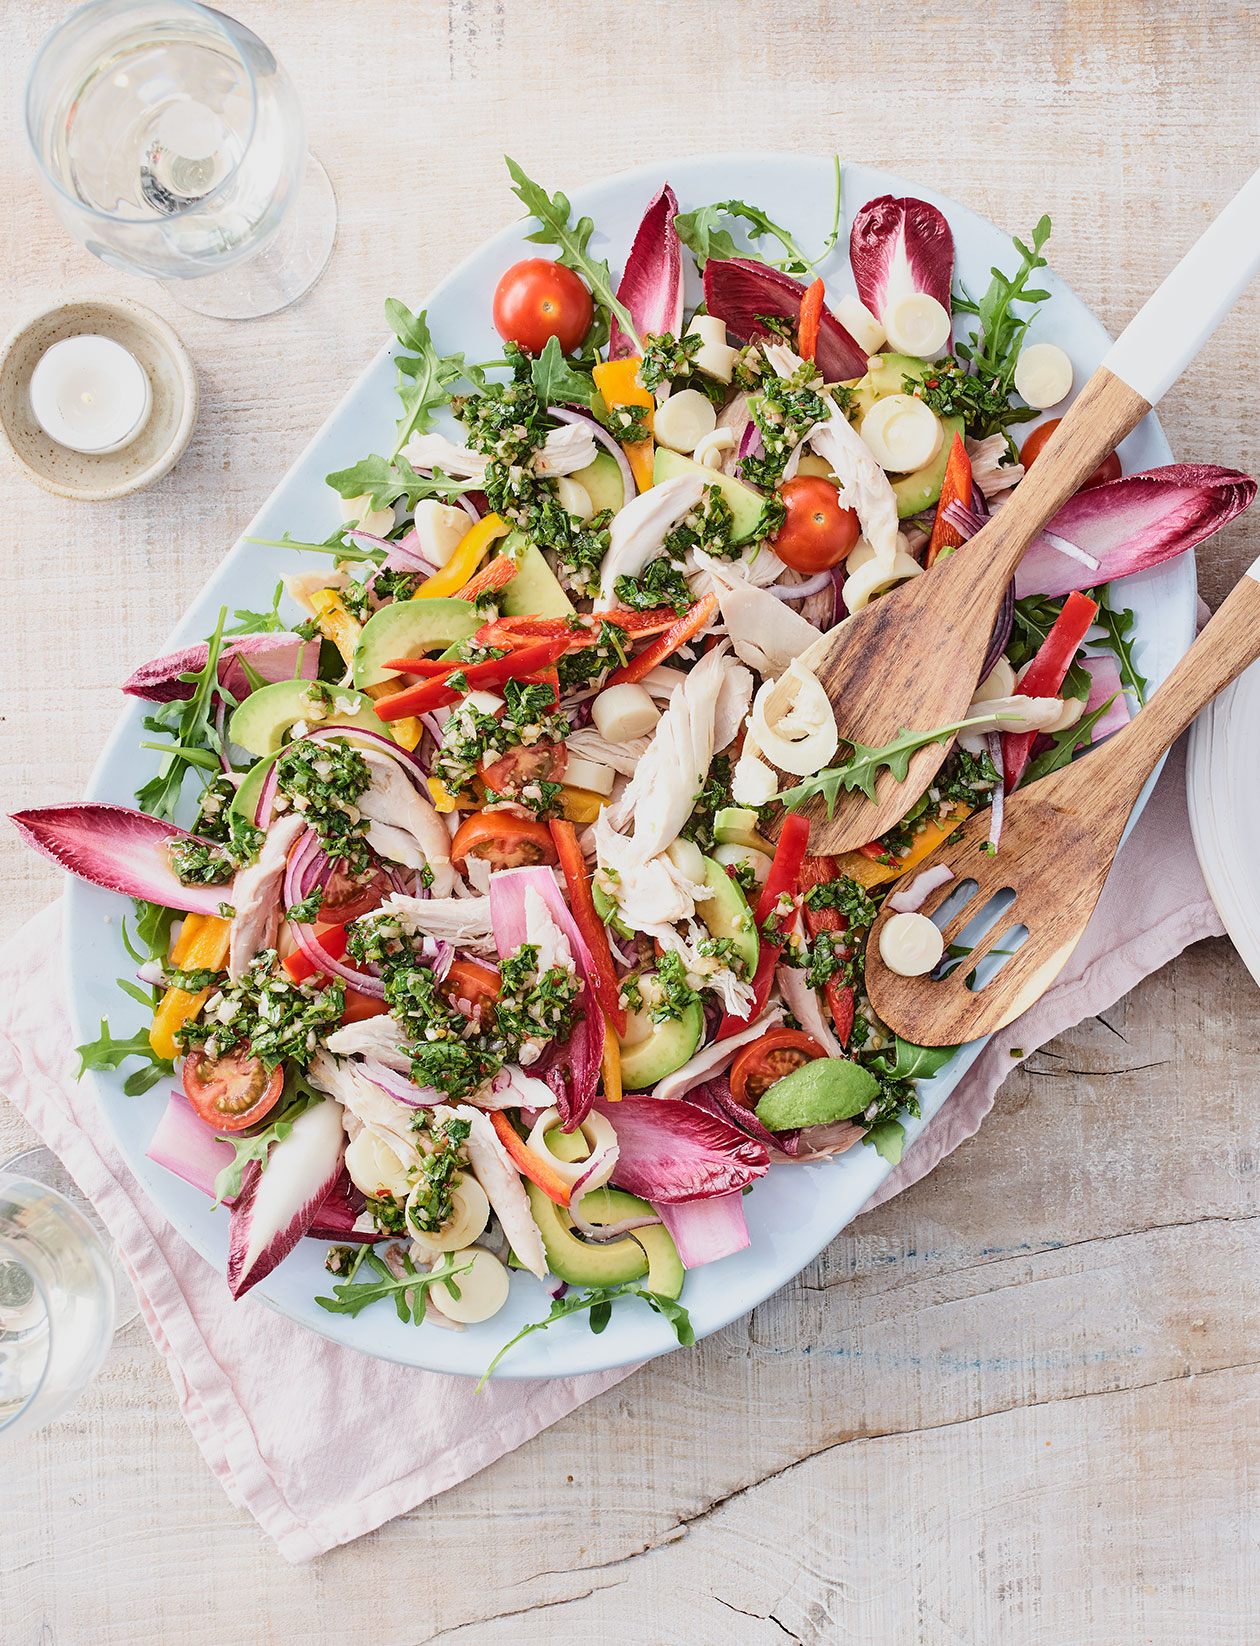 Rotisserie chicken salad with hearts of palm and chimichurri dressing